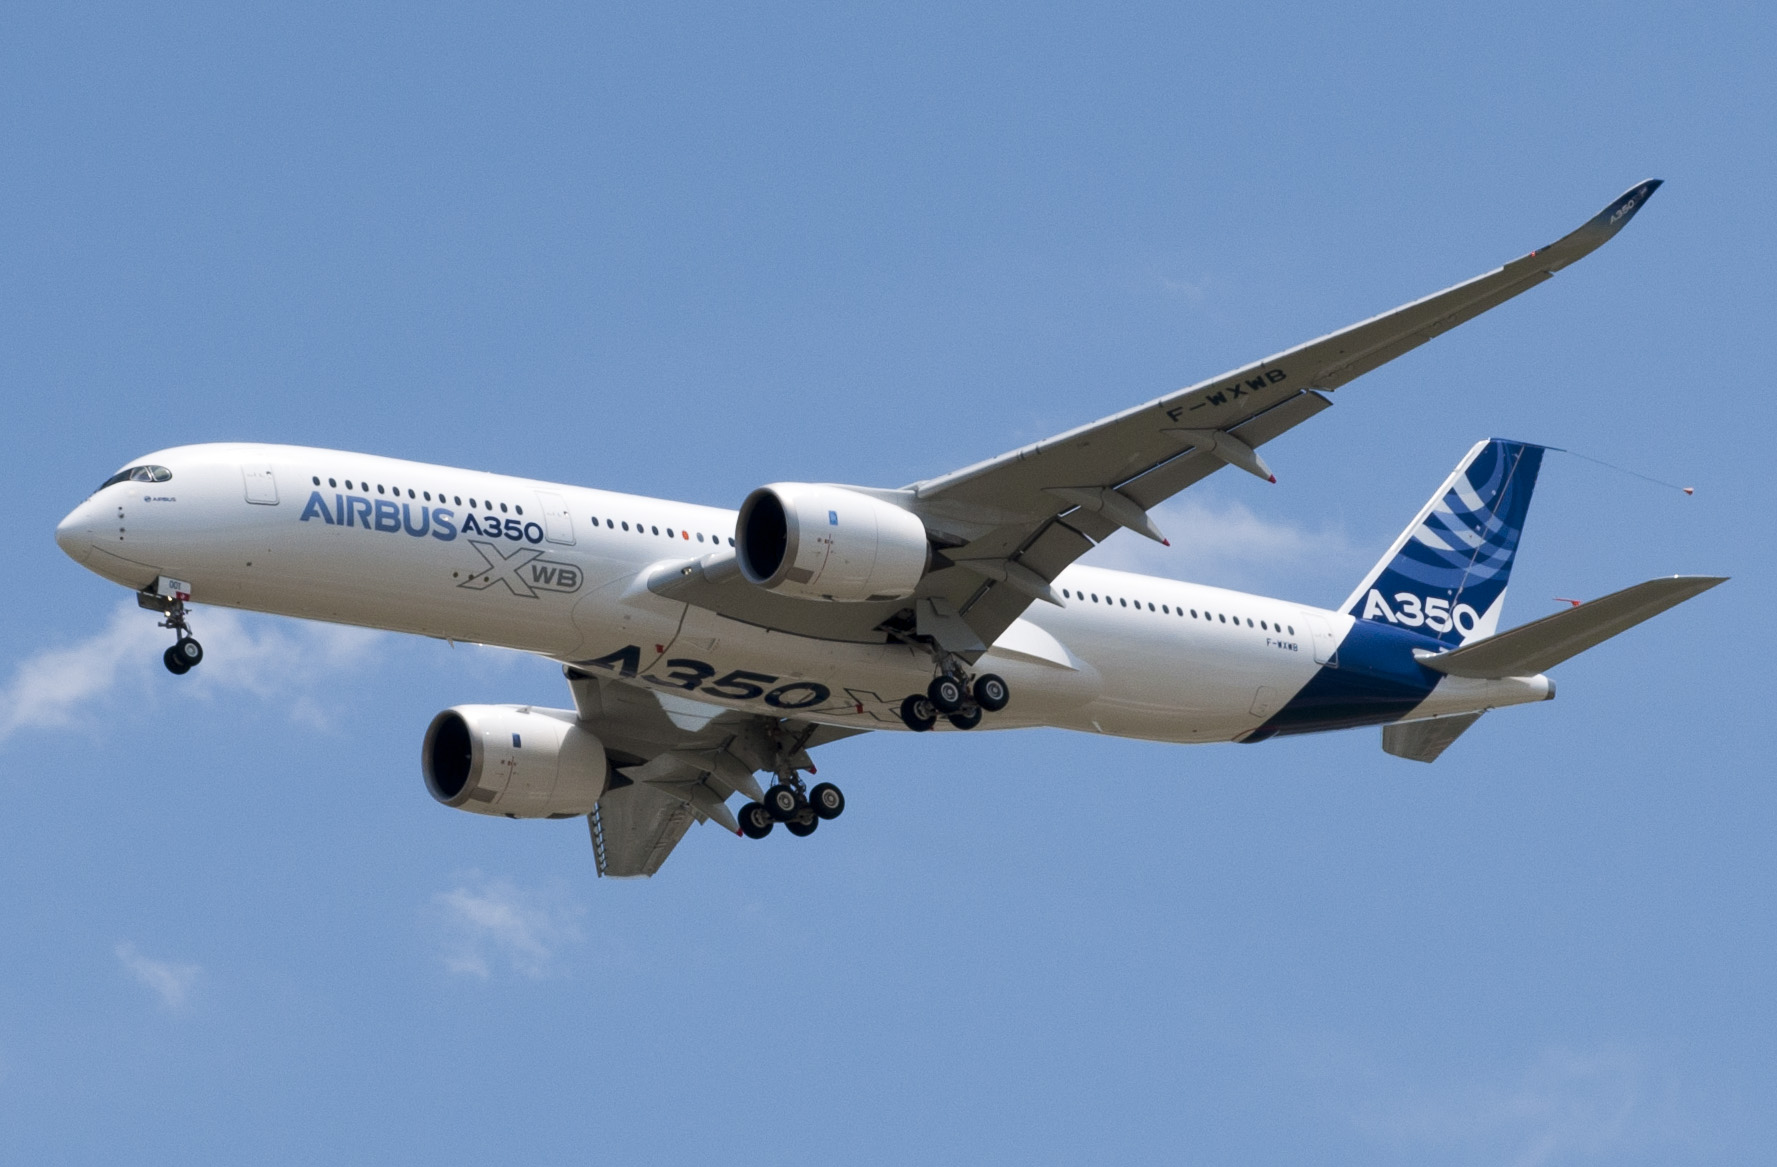 What are the Airbus A350 Specs?